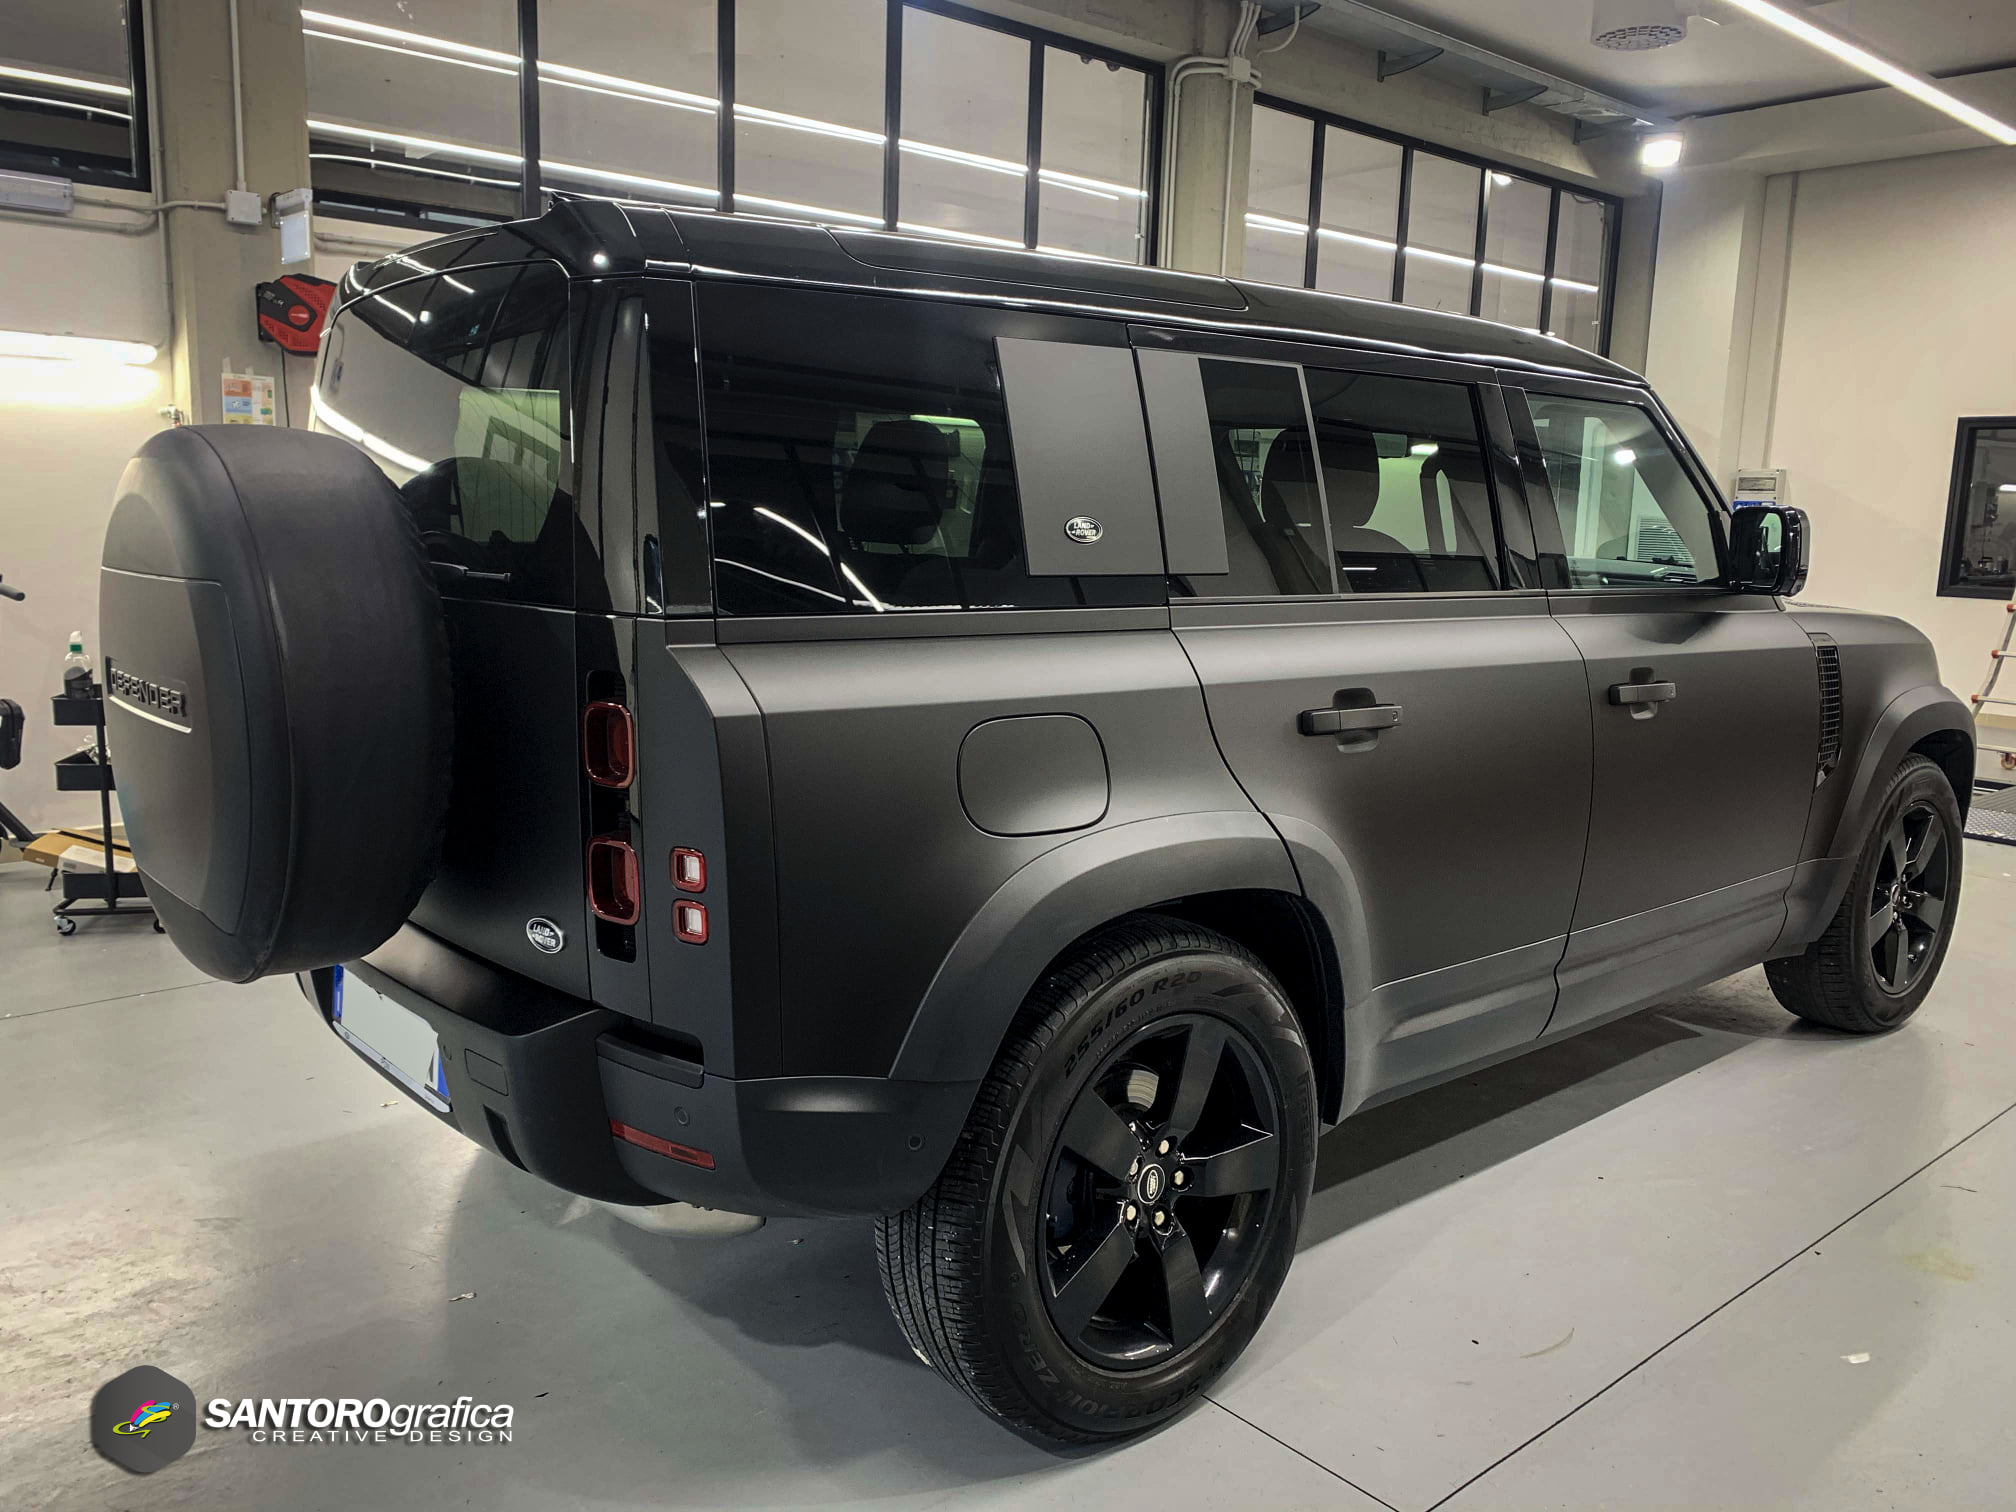 car wrapping land rover defender nero opaco 3